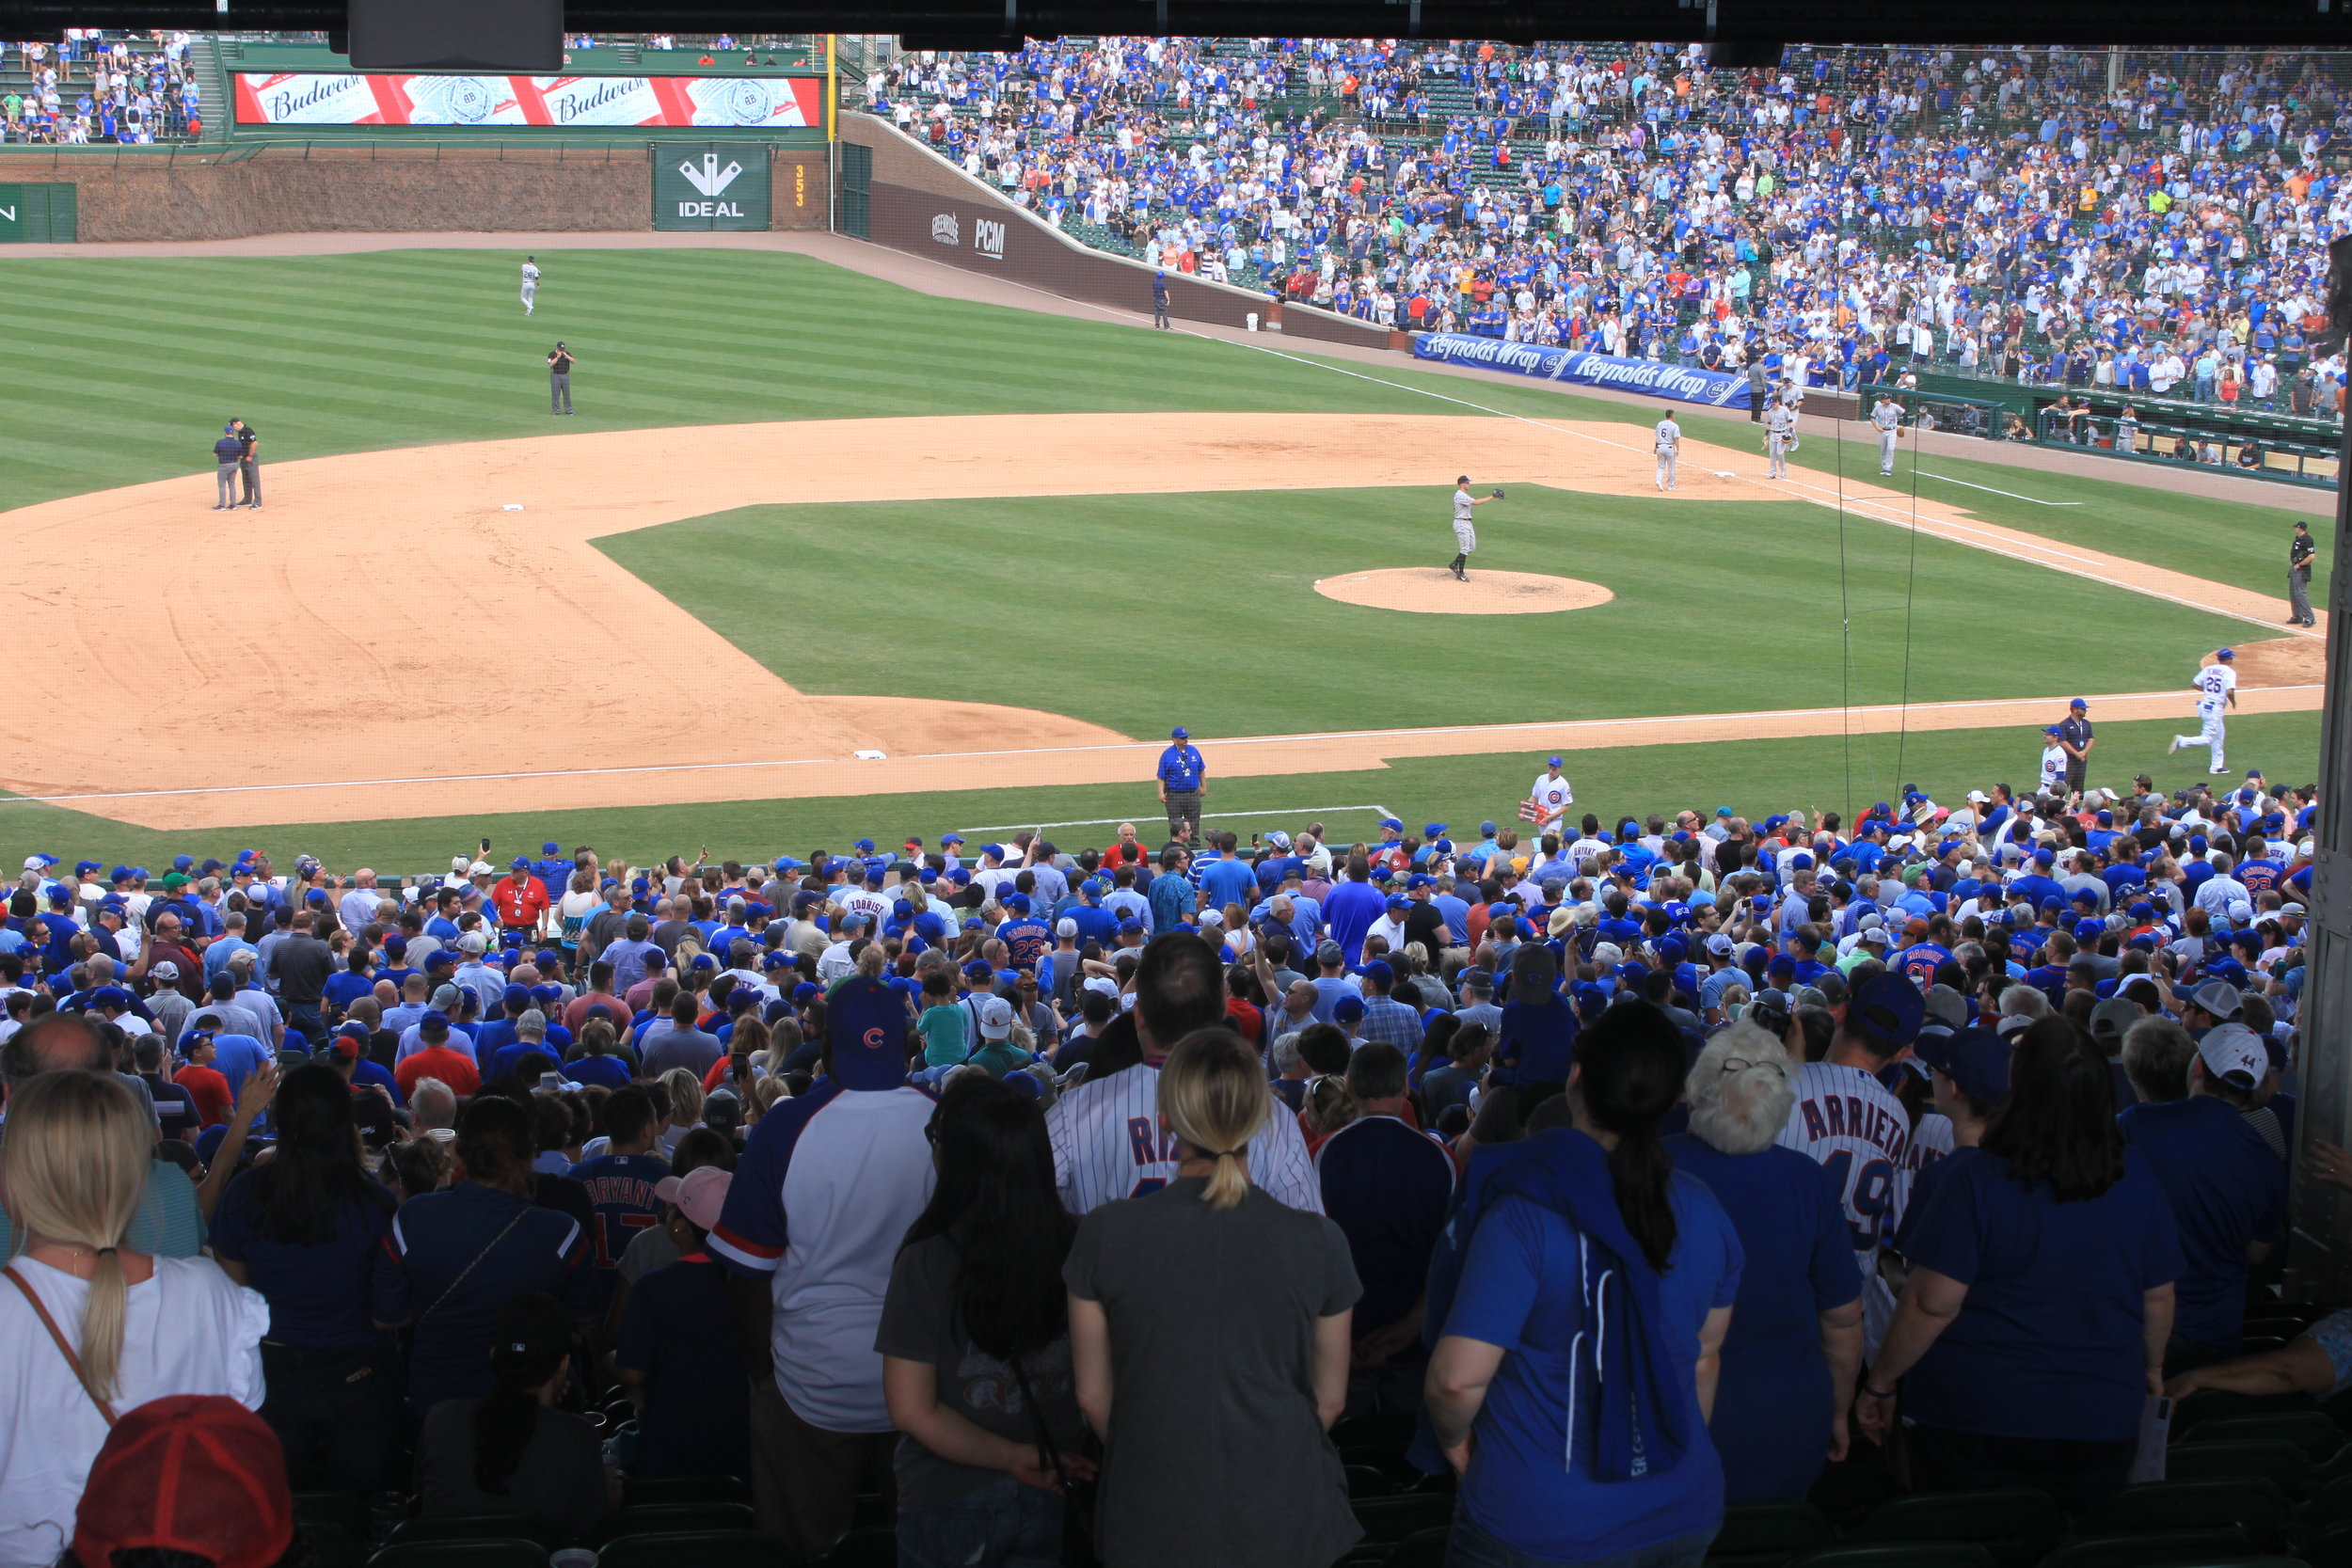 In the seventh inning stretch, Wrigley was filled with excitement and pure joy.